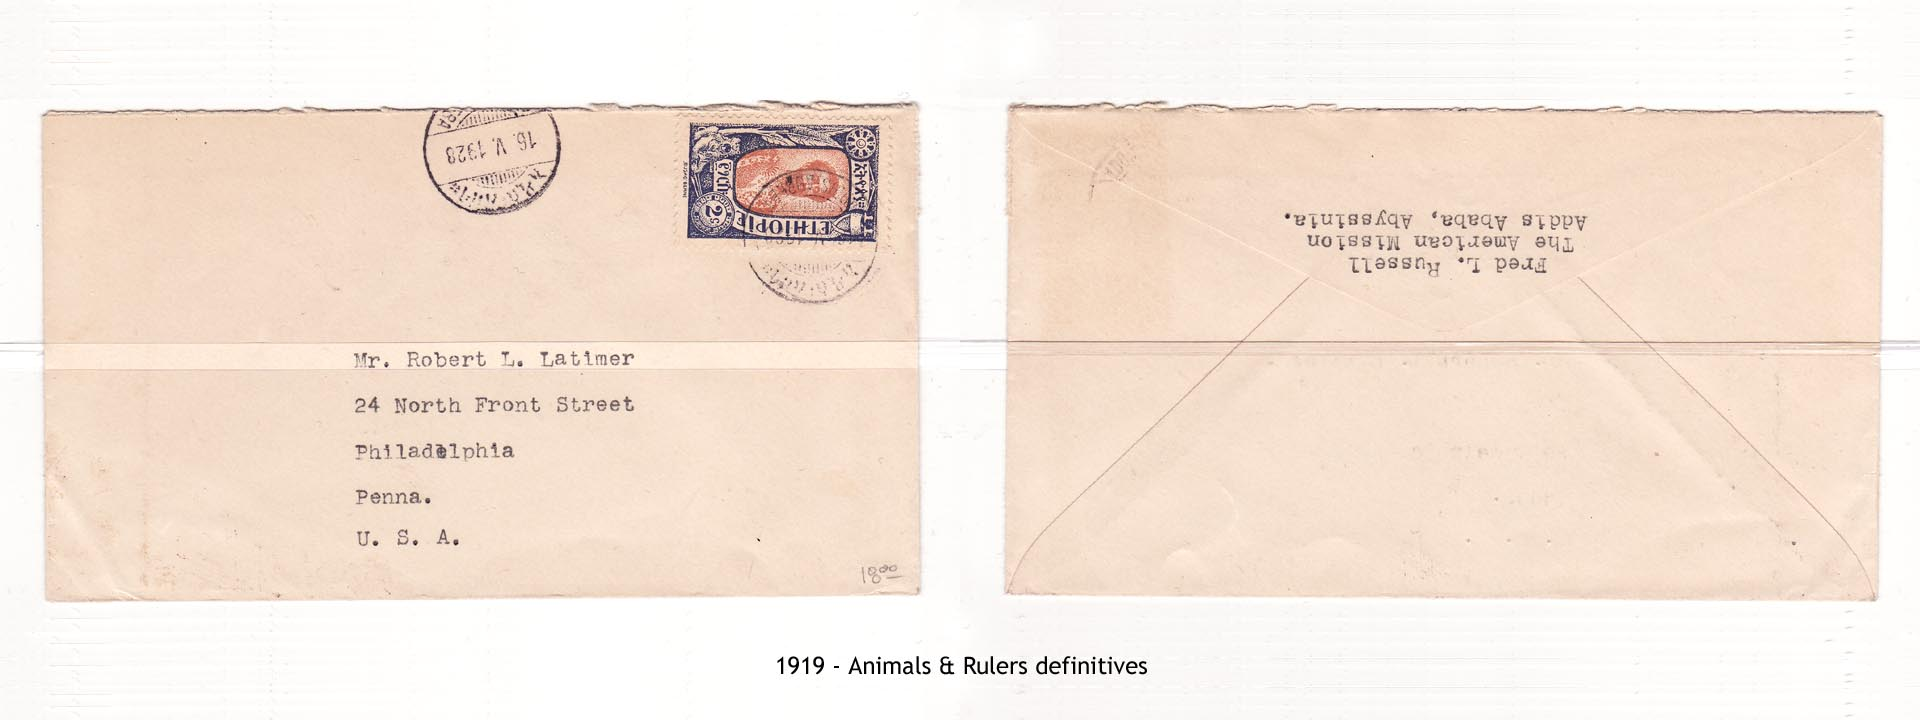 1919 - Animals & Rulers definitives